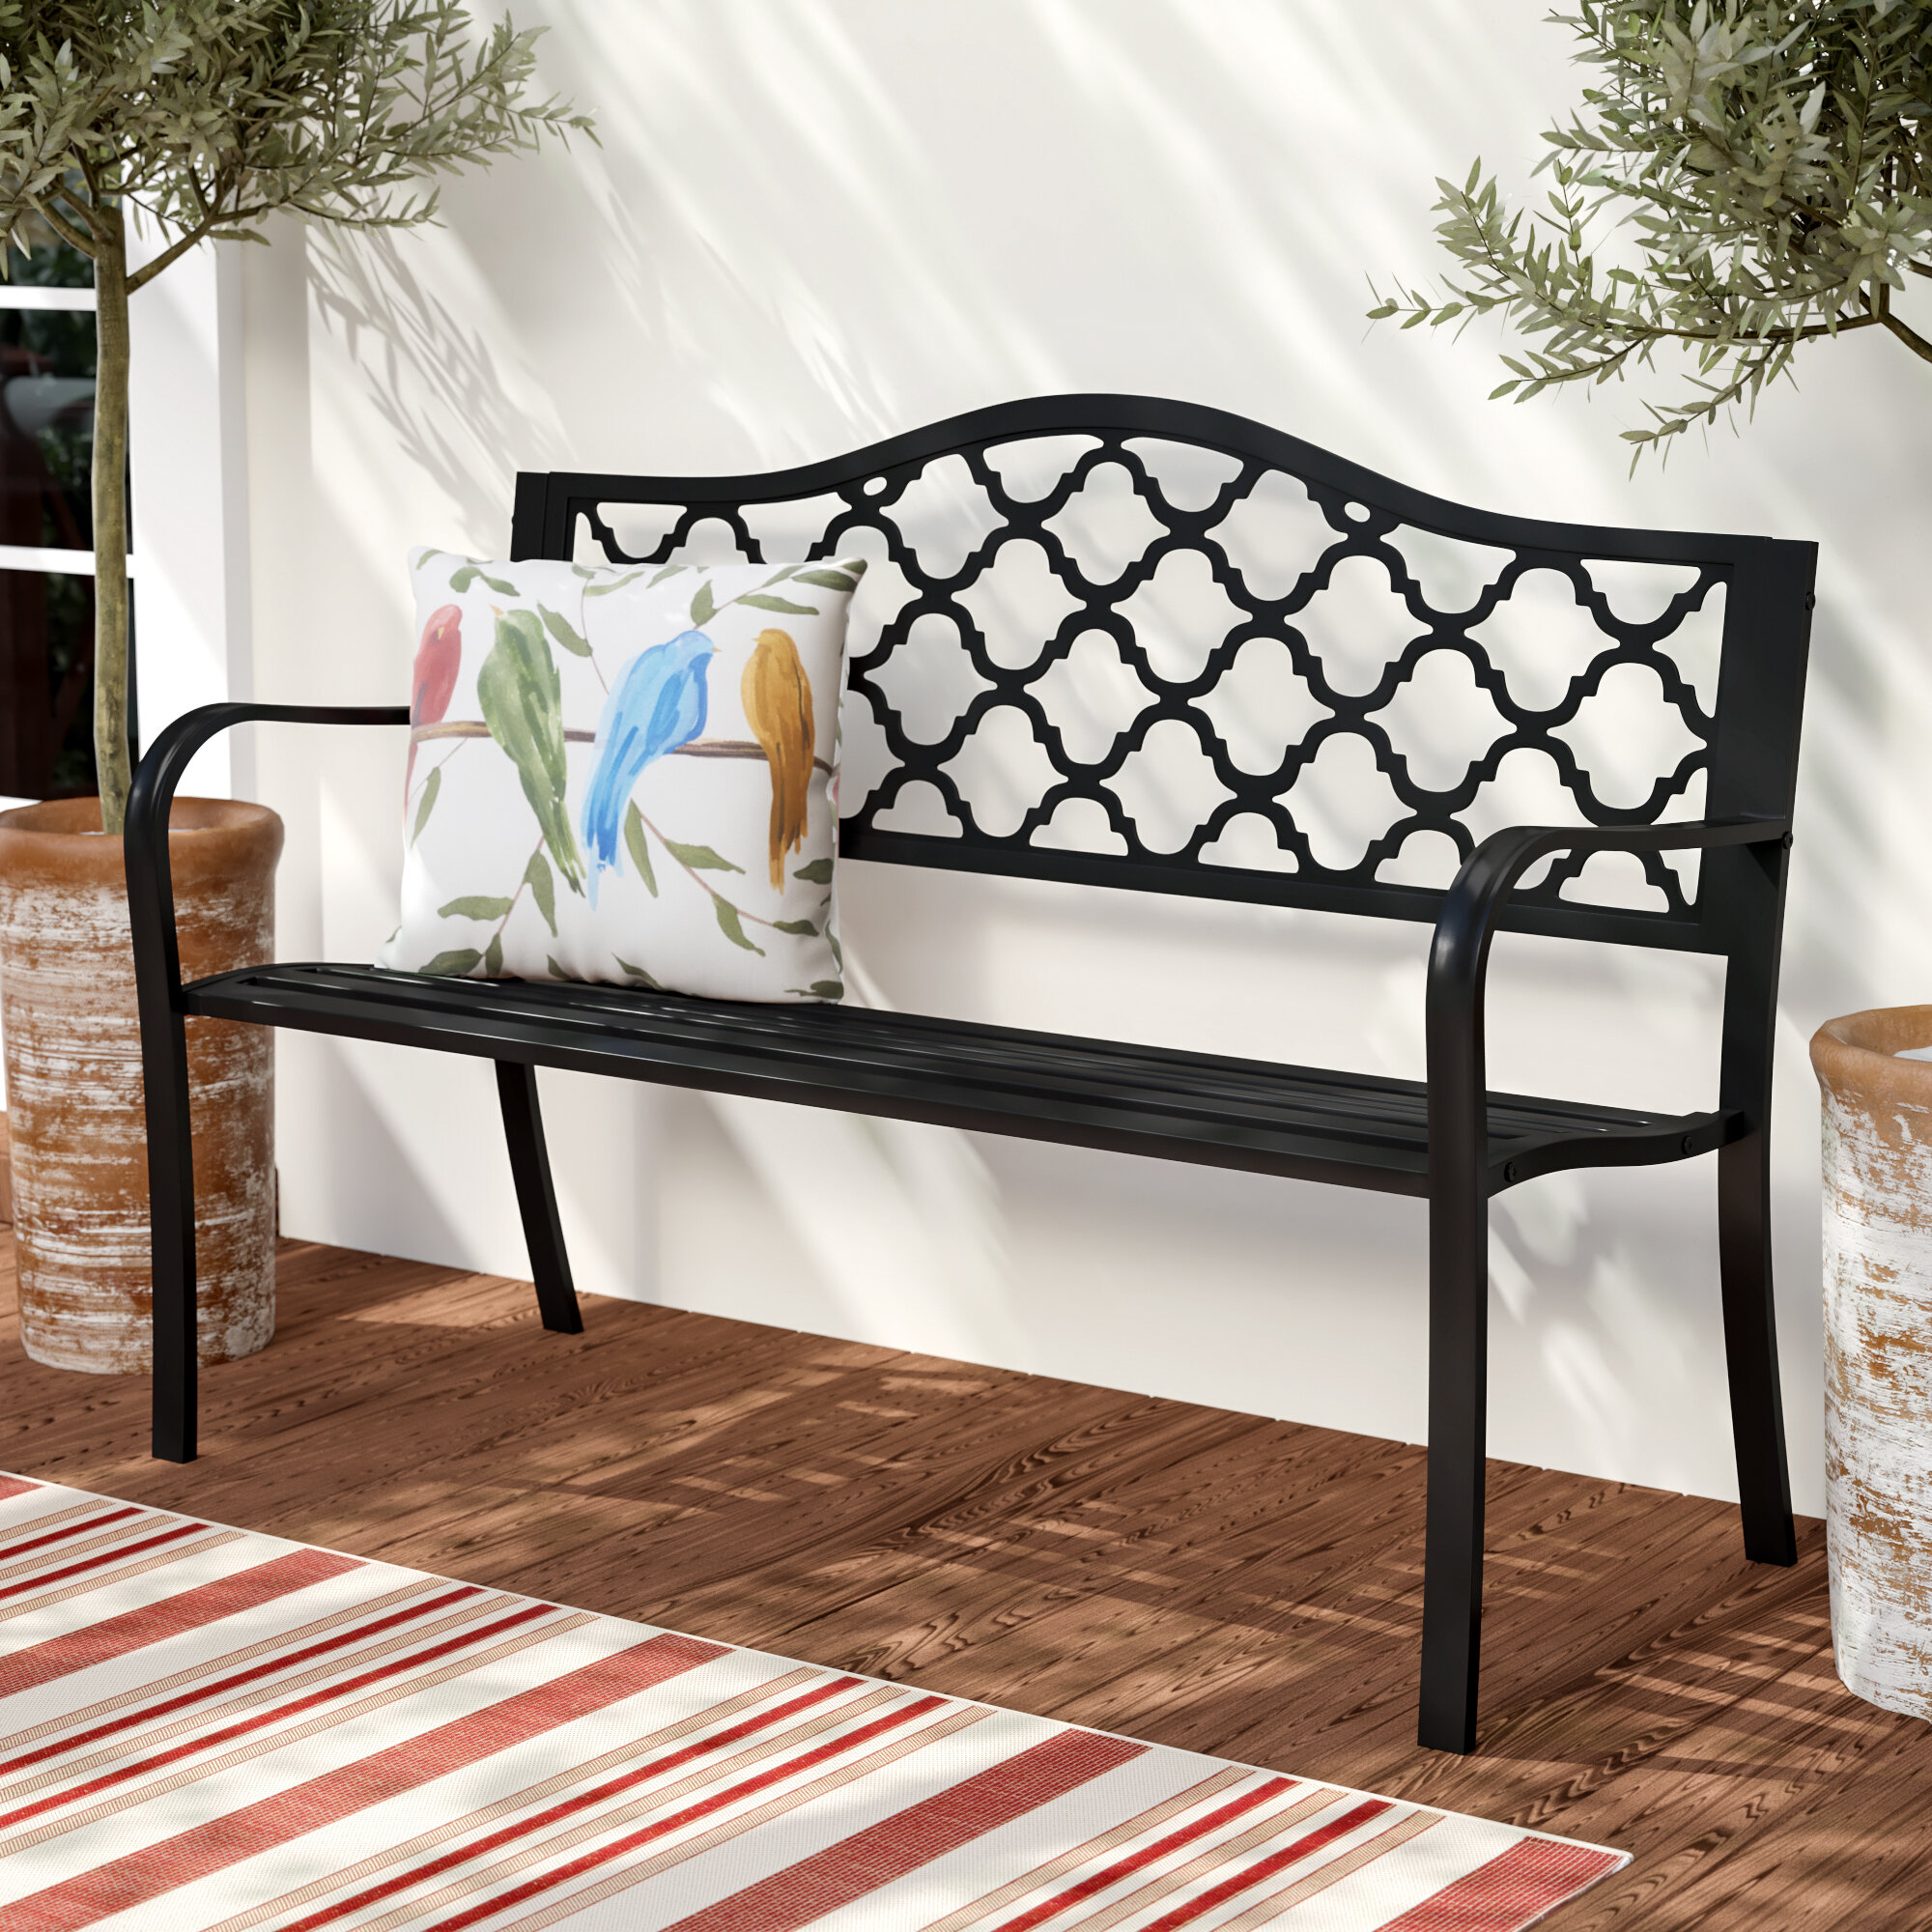 Farrelly Patio Cast Iron Garden Bench Within Alvah Slatted Cast Iron And Tubular Steel Garden Benches (View 5 of 25)